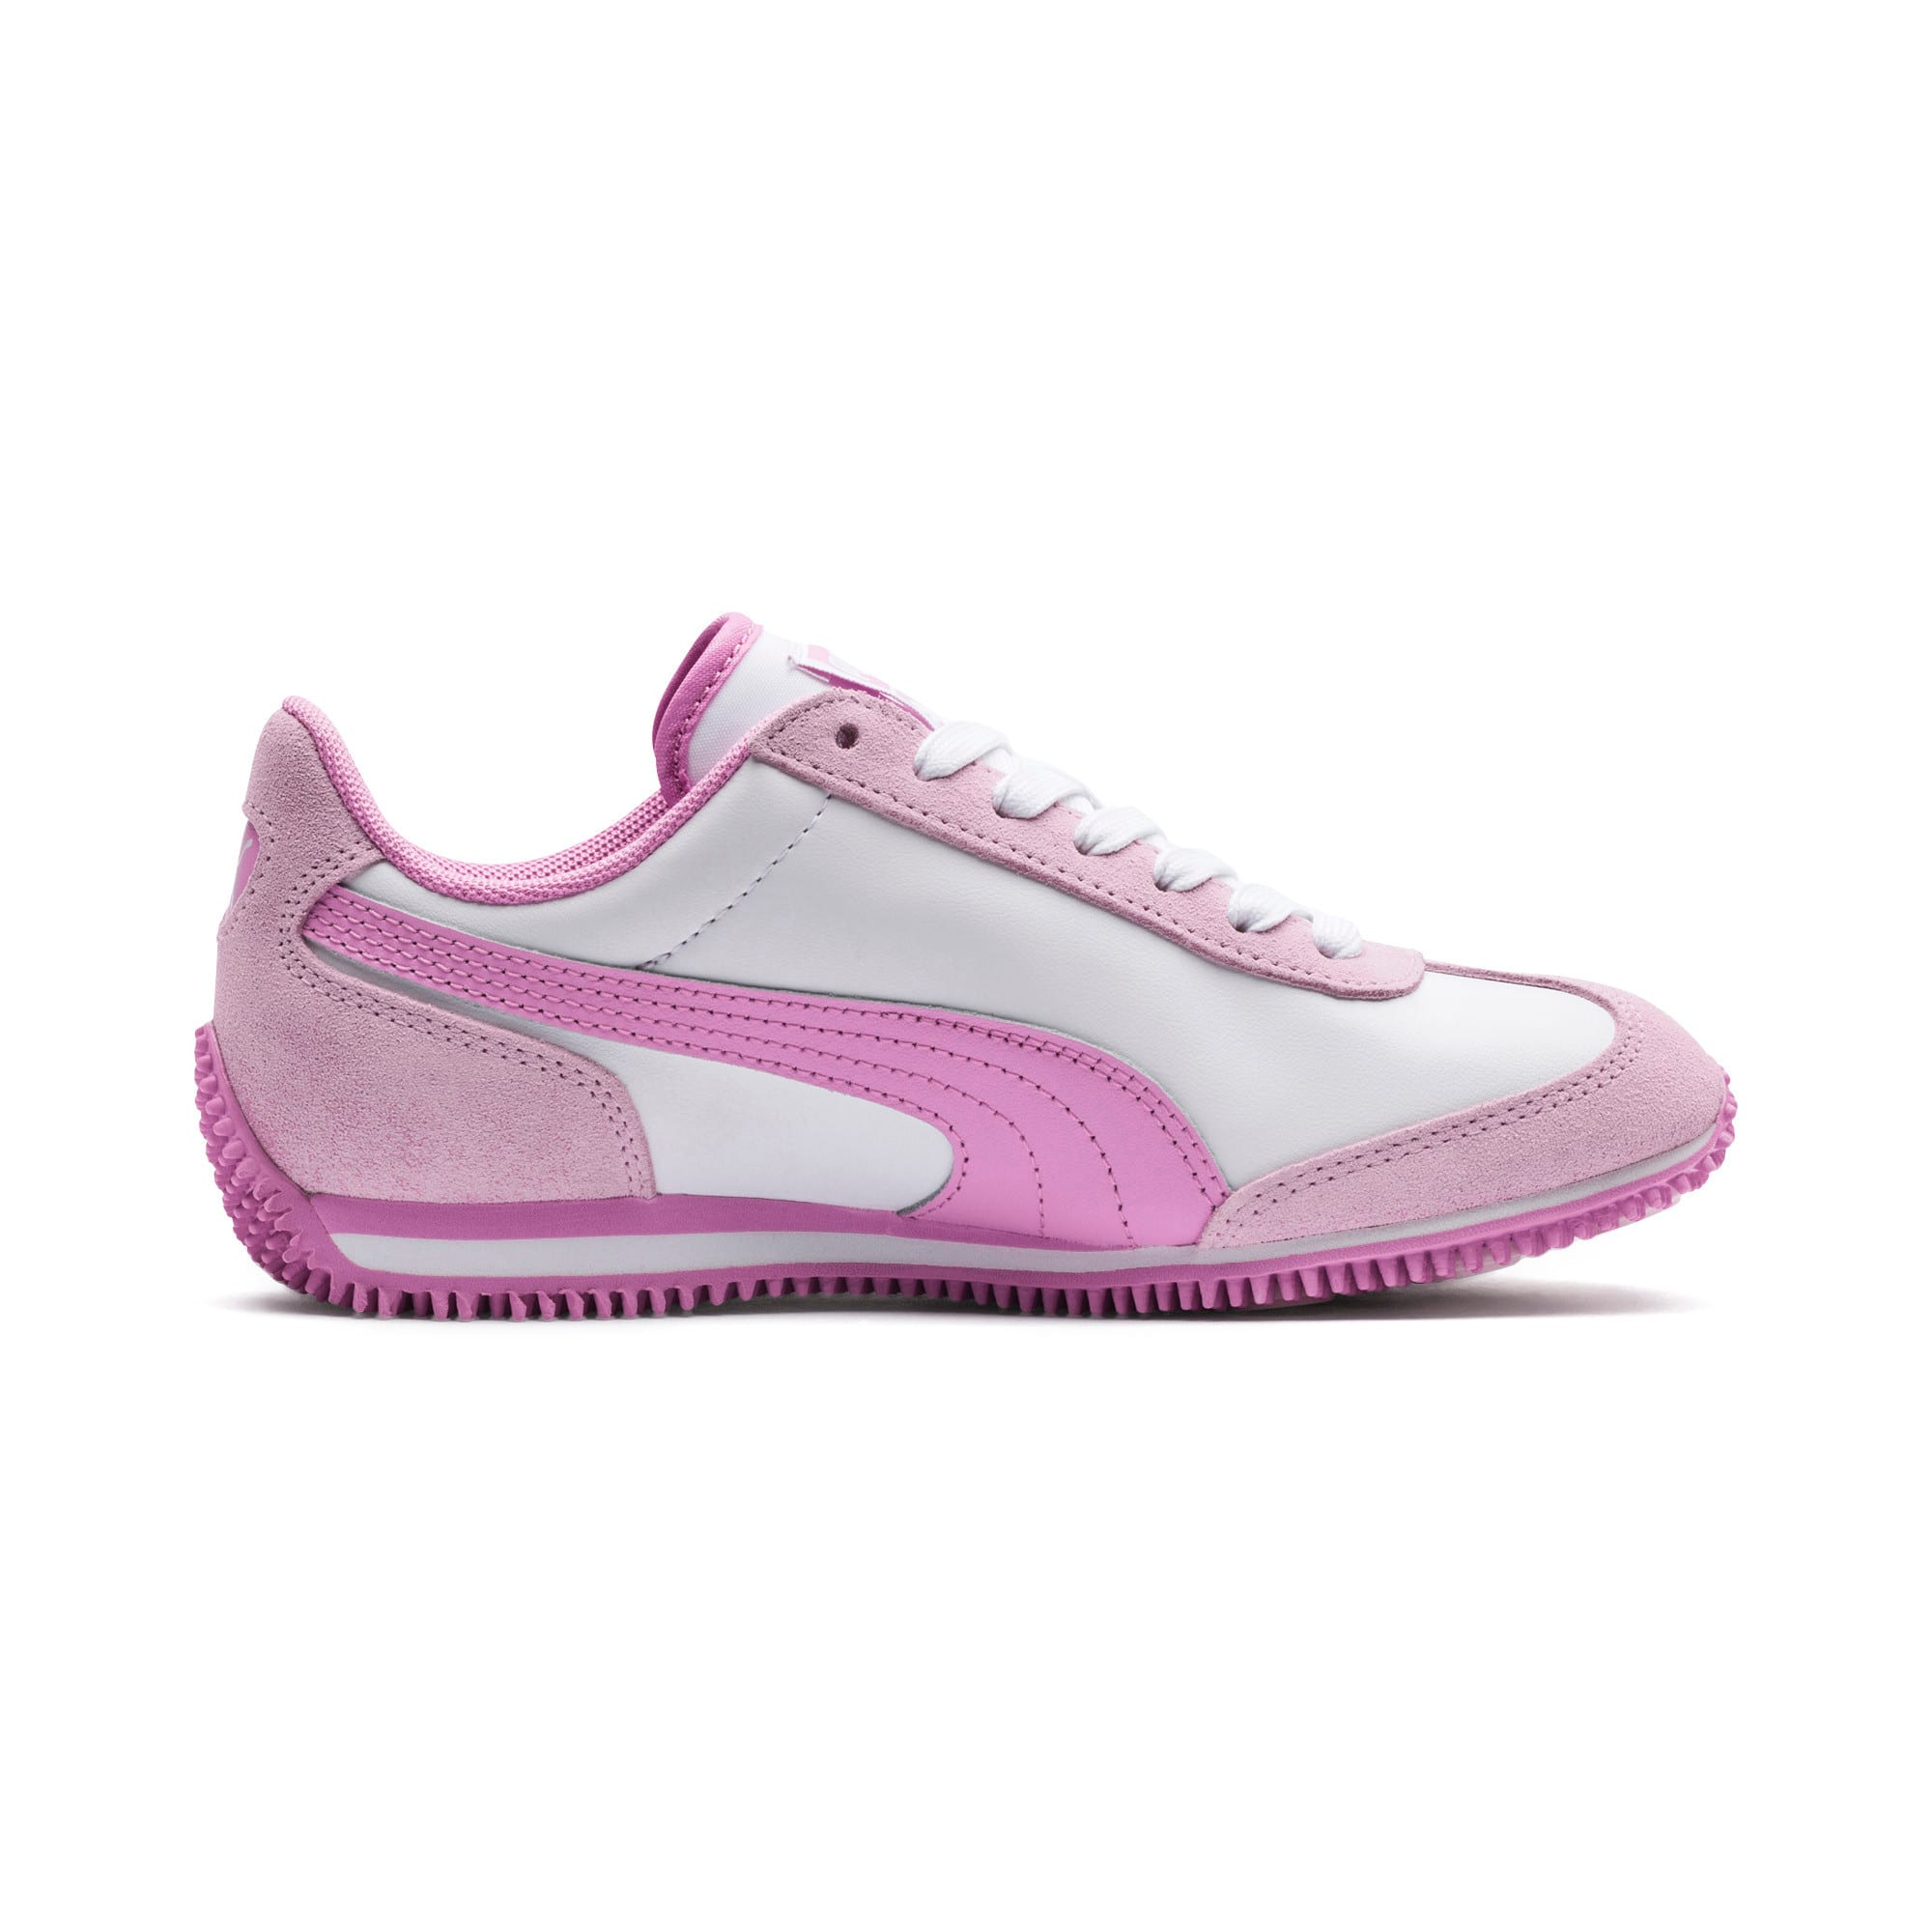 Thumbnail 5 of Kid's Whirlwind Trainers, Puma White-Winsome Orchid, medium-IND